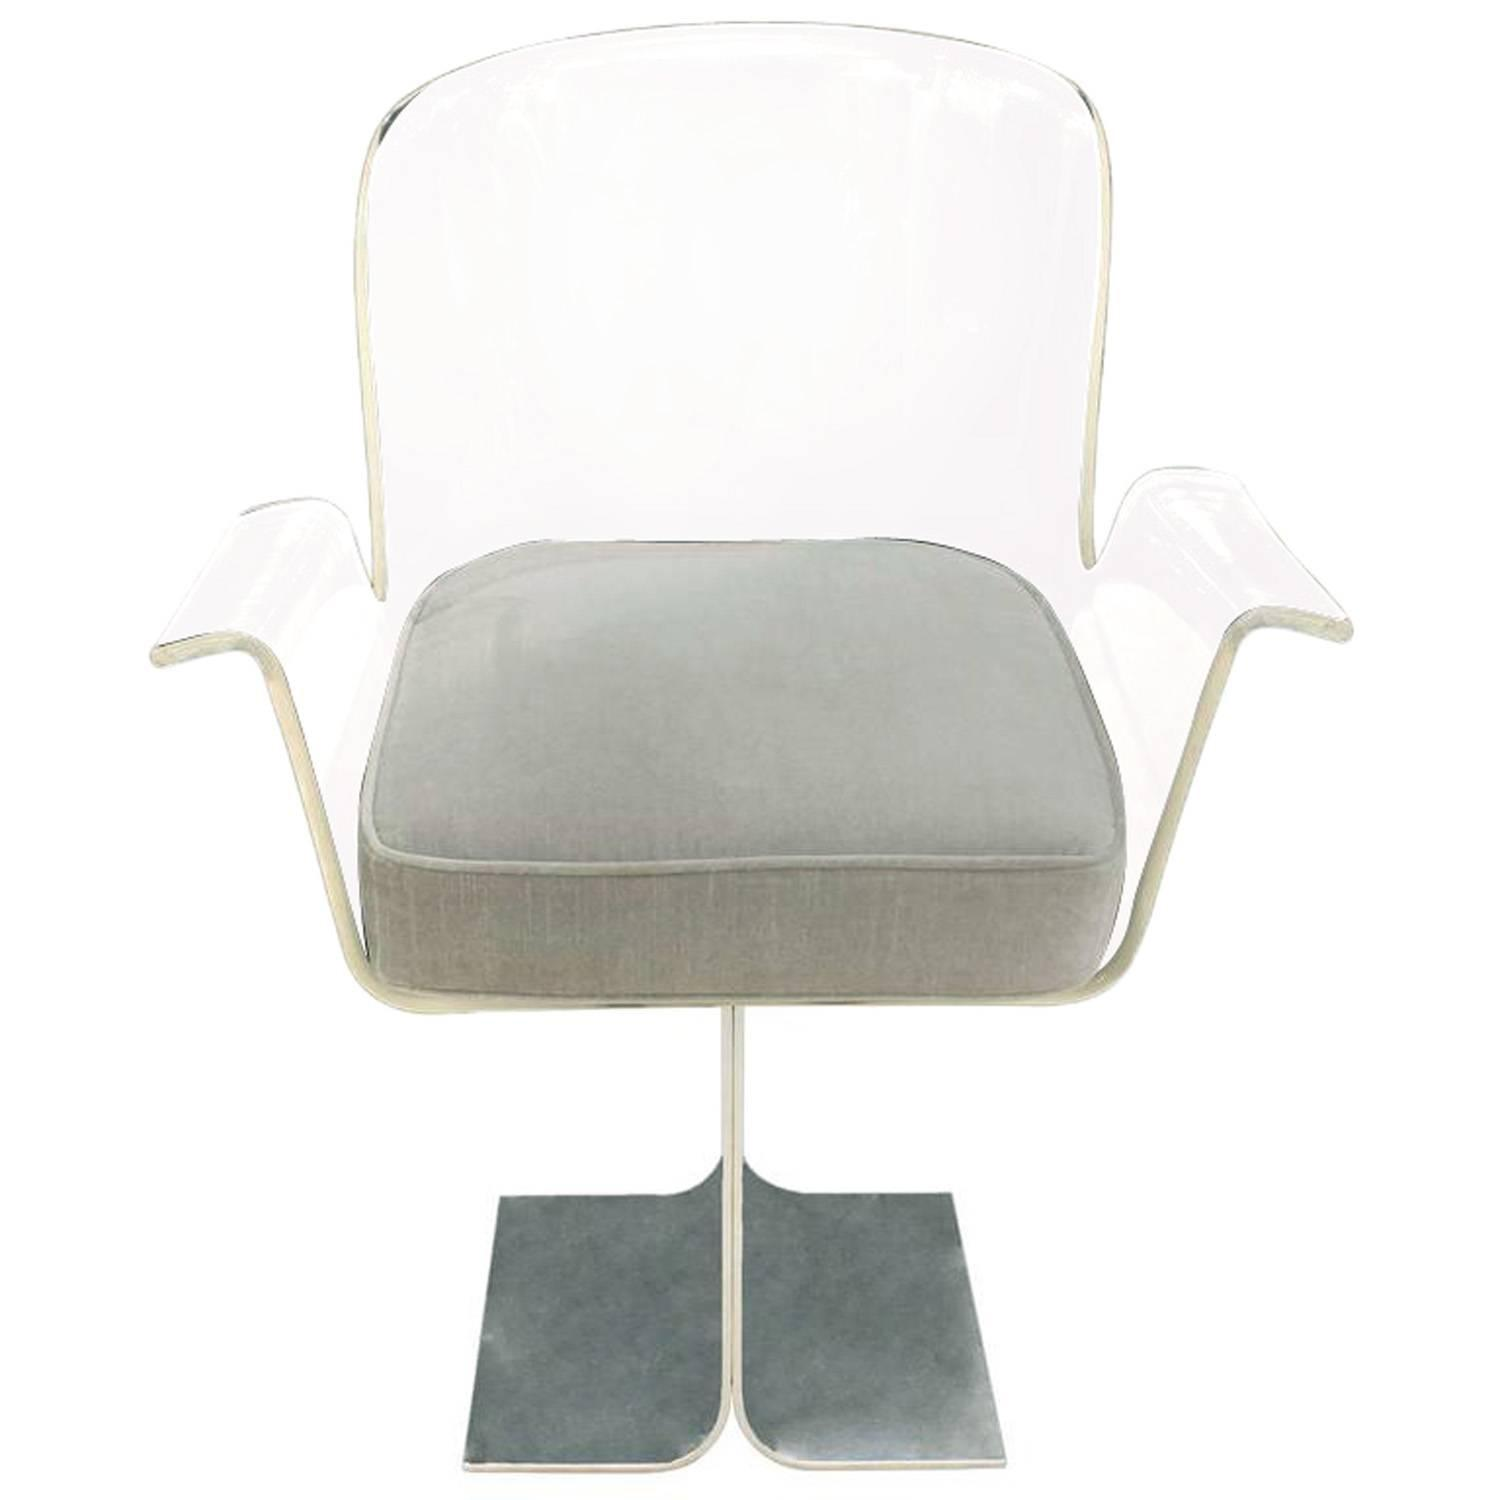 clear acrylic swivel office chair 2 person recliner chairs inspirational lucite rtty1